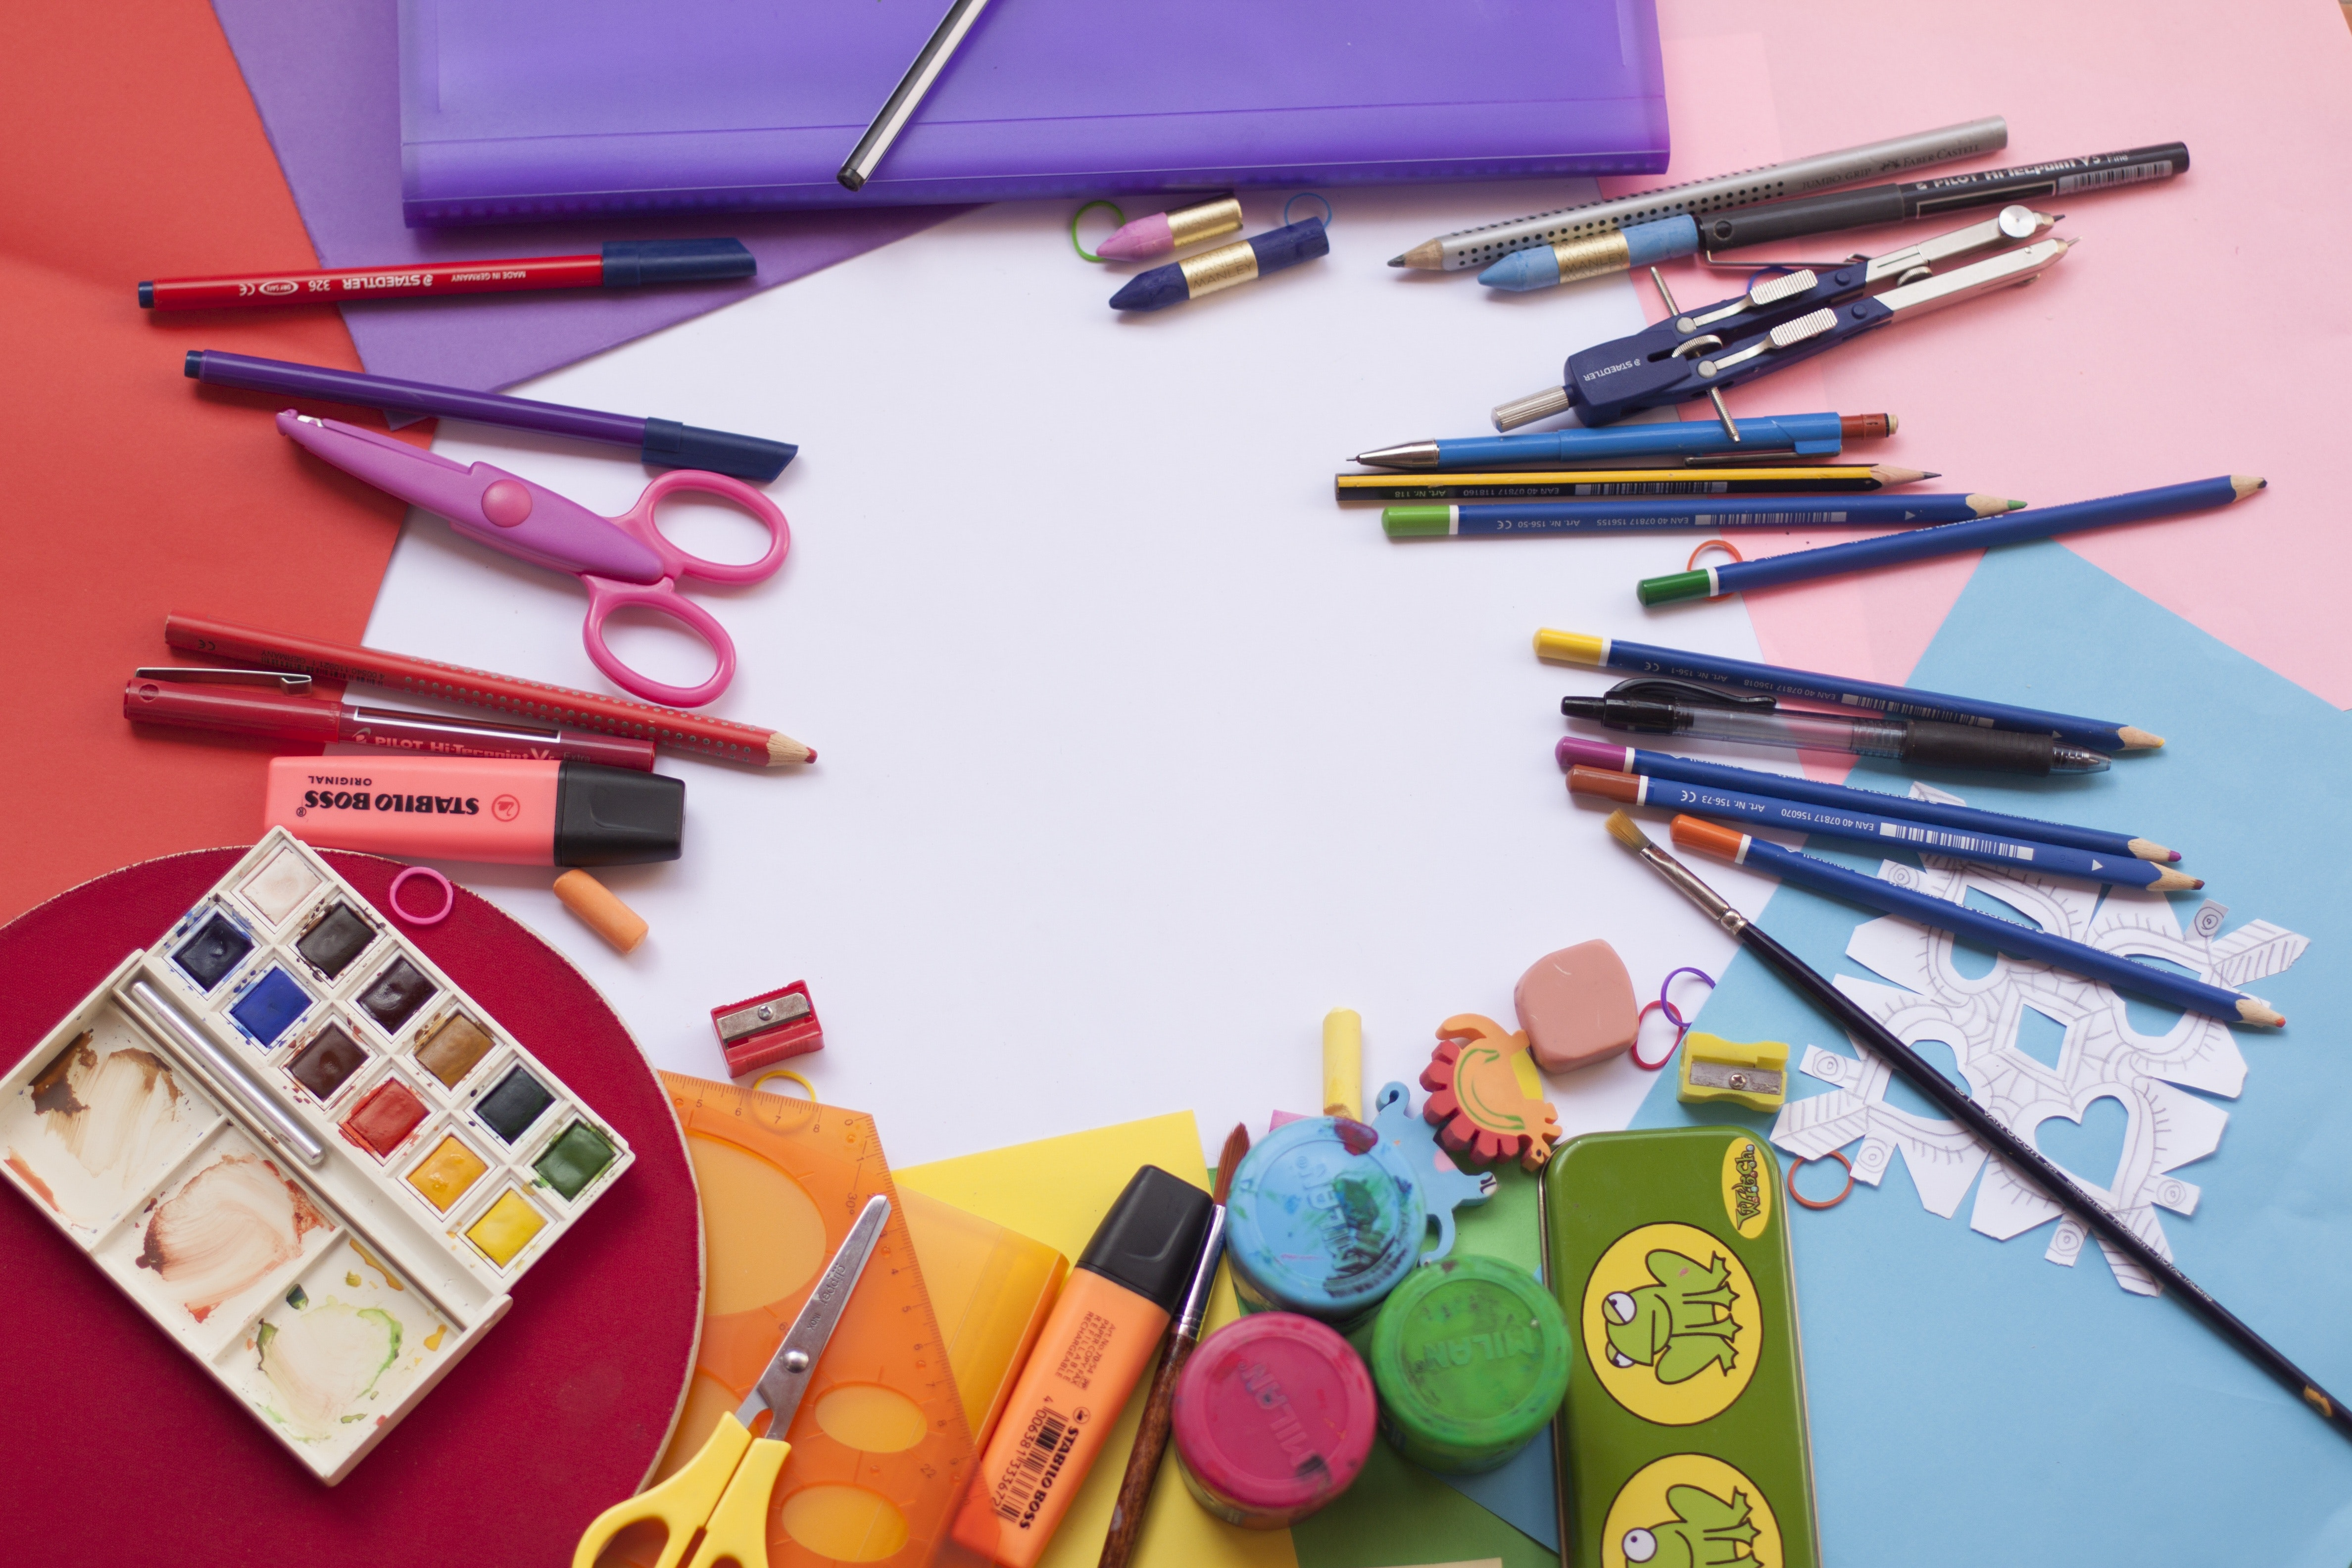 Free photo: Painting and Drawing Tools Set - School supplies, School ...